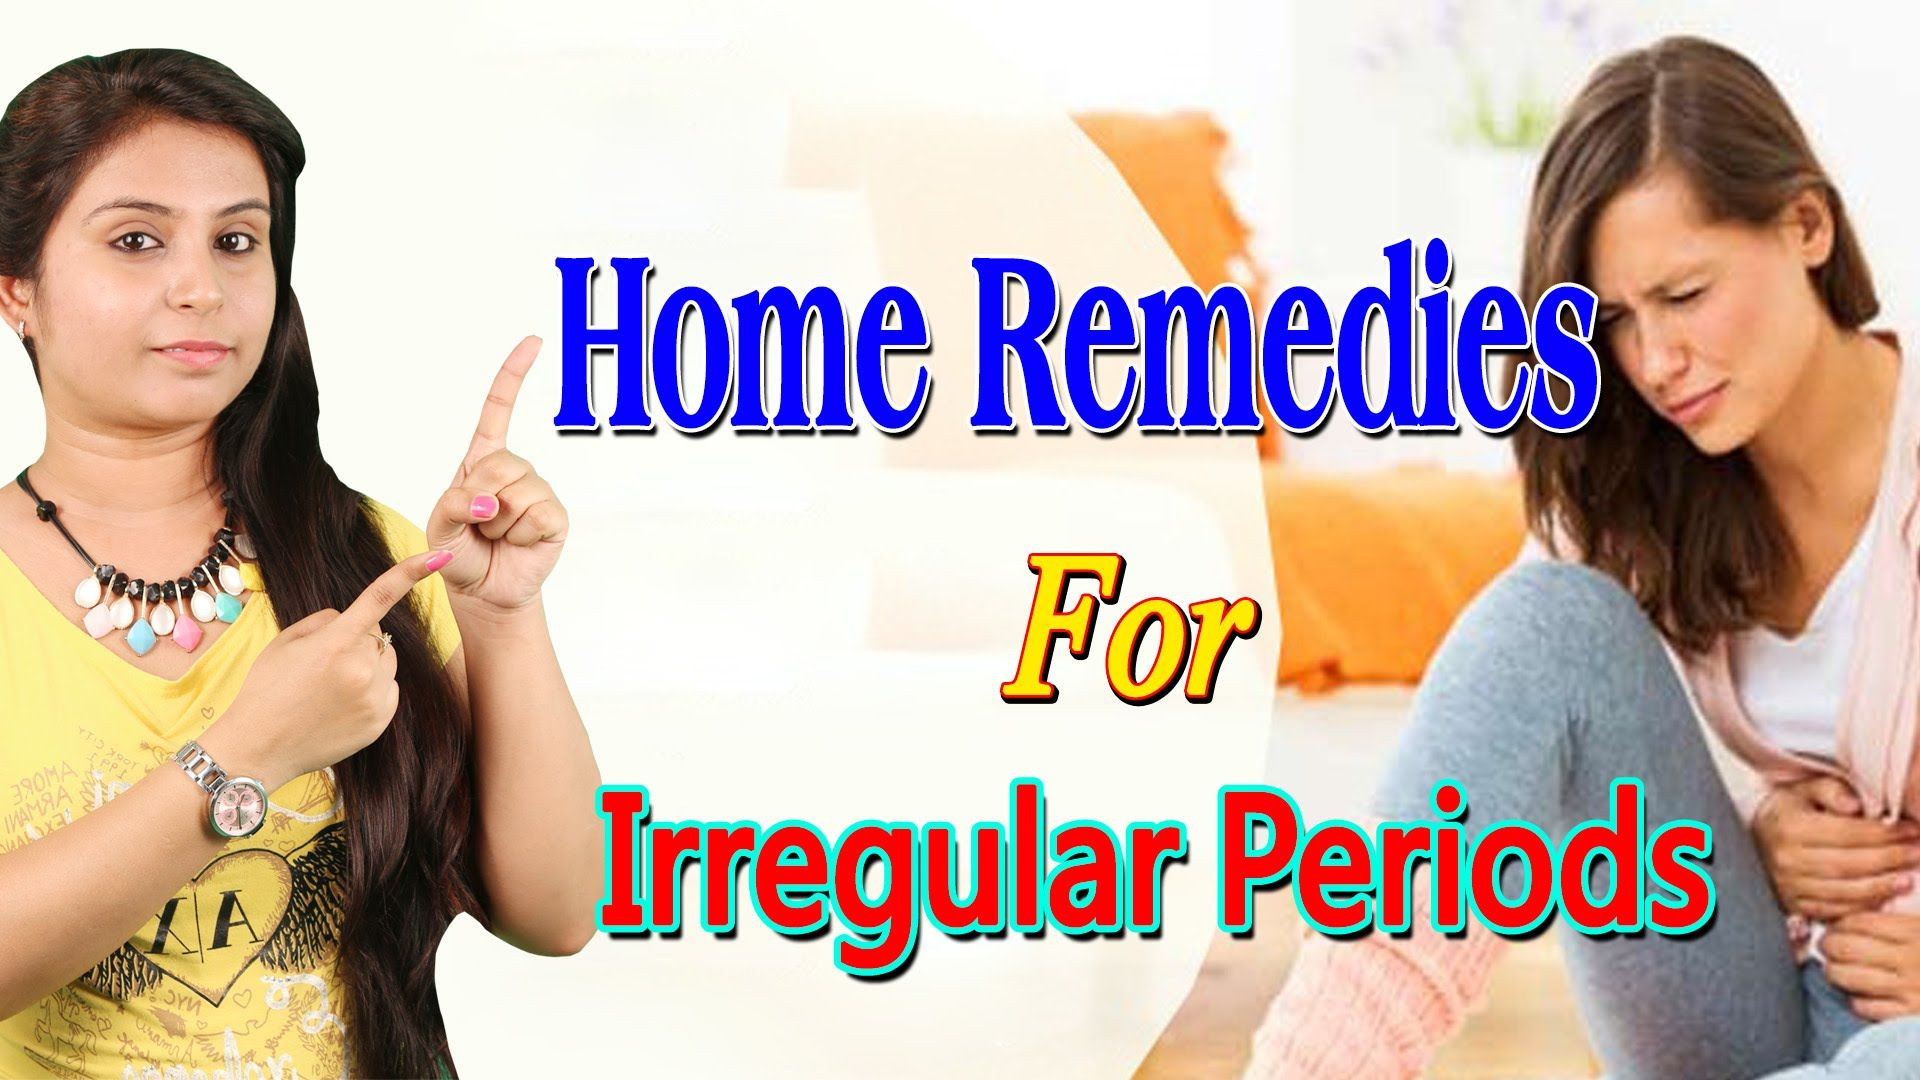 Home Remedies For Irregular Periods Remedies For Periods In Women